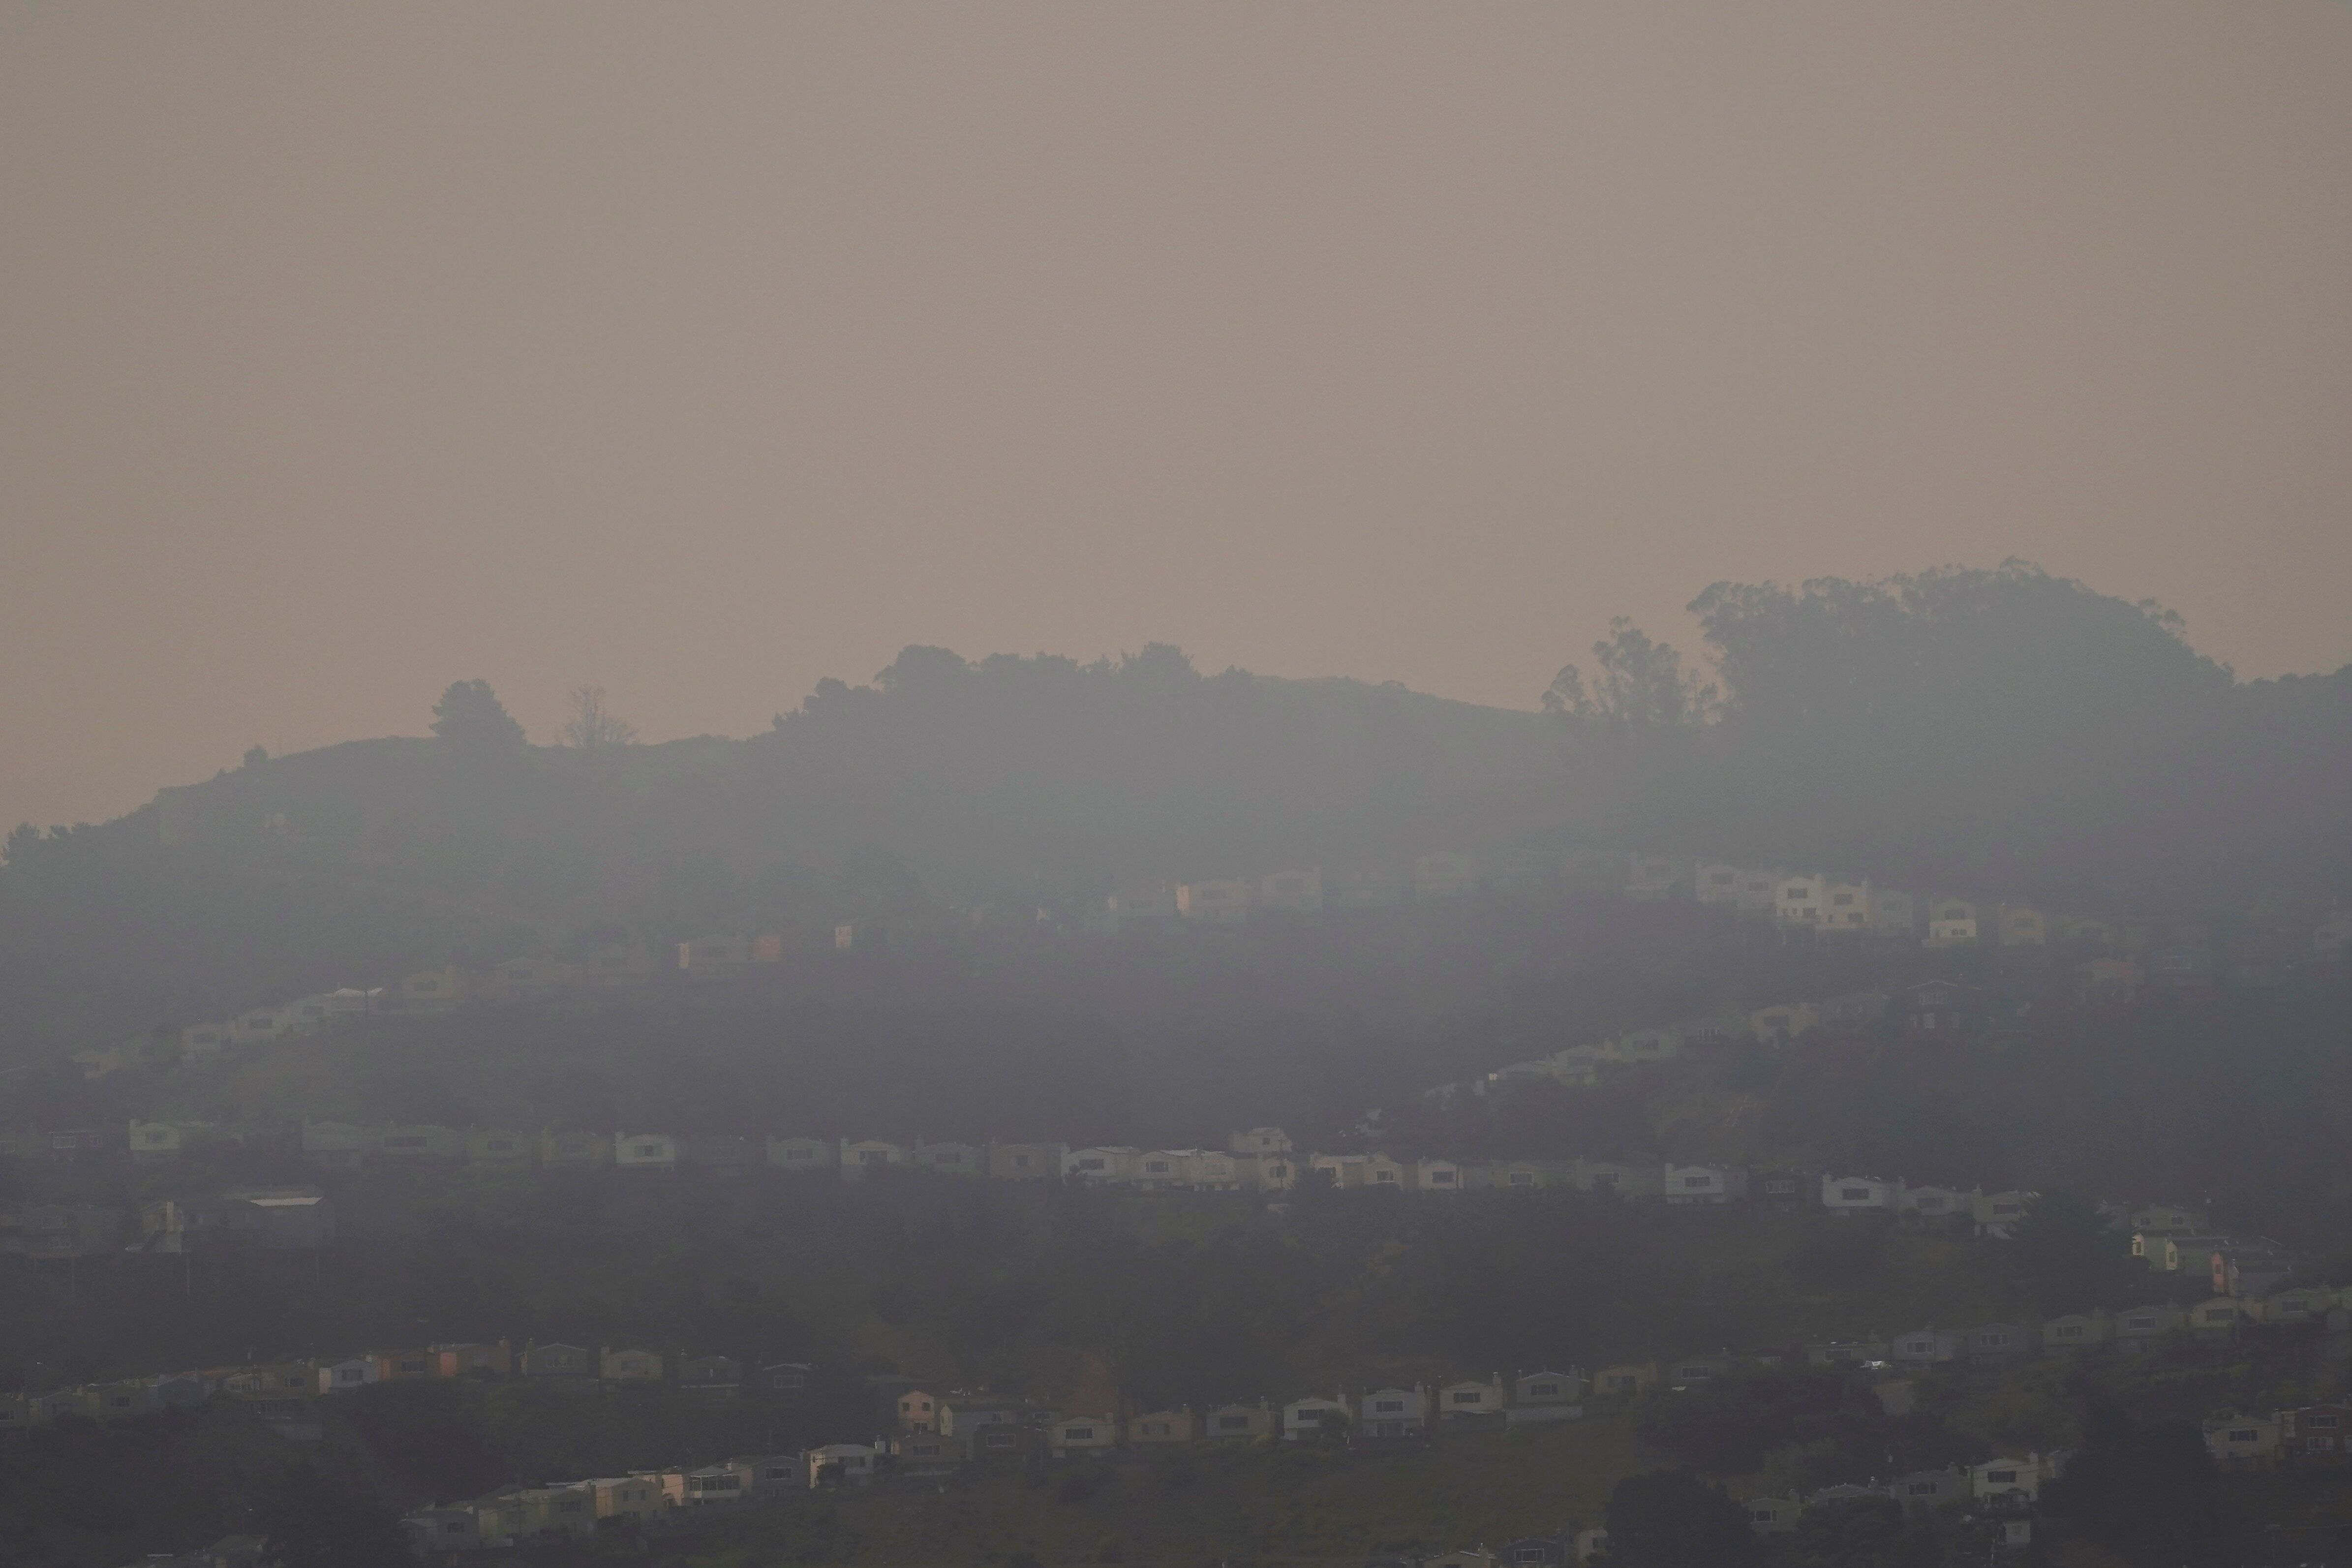 Smoke from wildfires hangs over homes in San Francisco, Wednesday, Aug. 19, 2020. (AP Photo/Jeff Chiu)